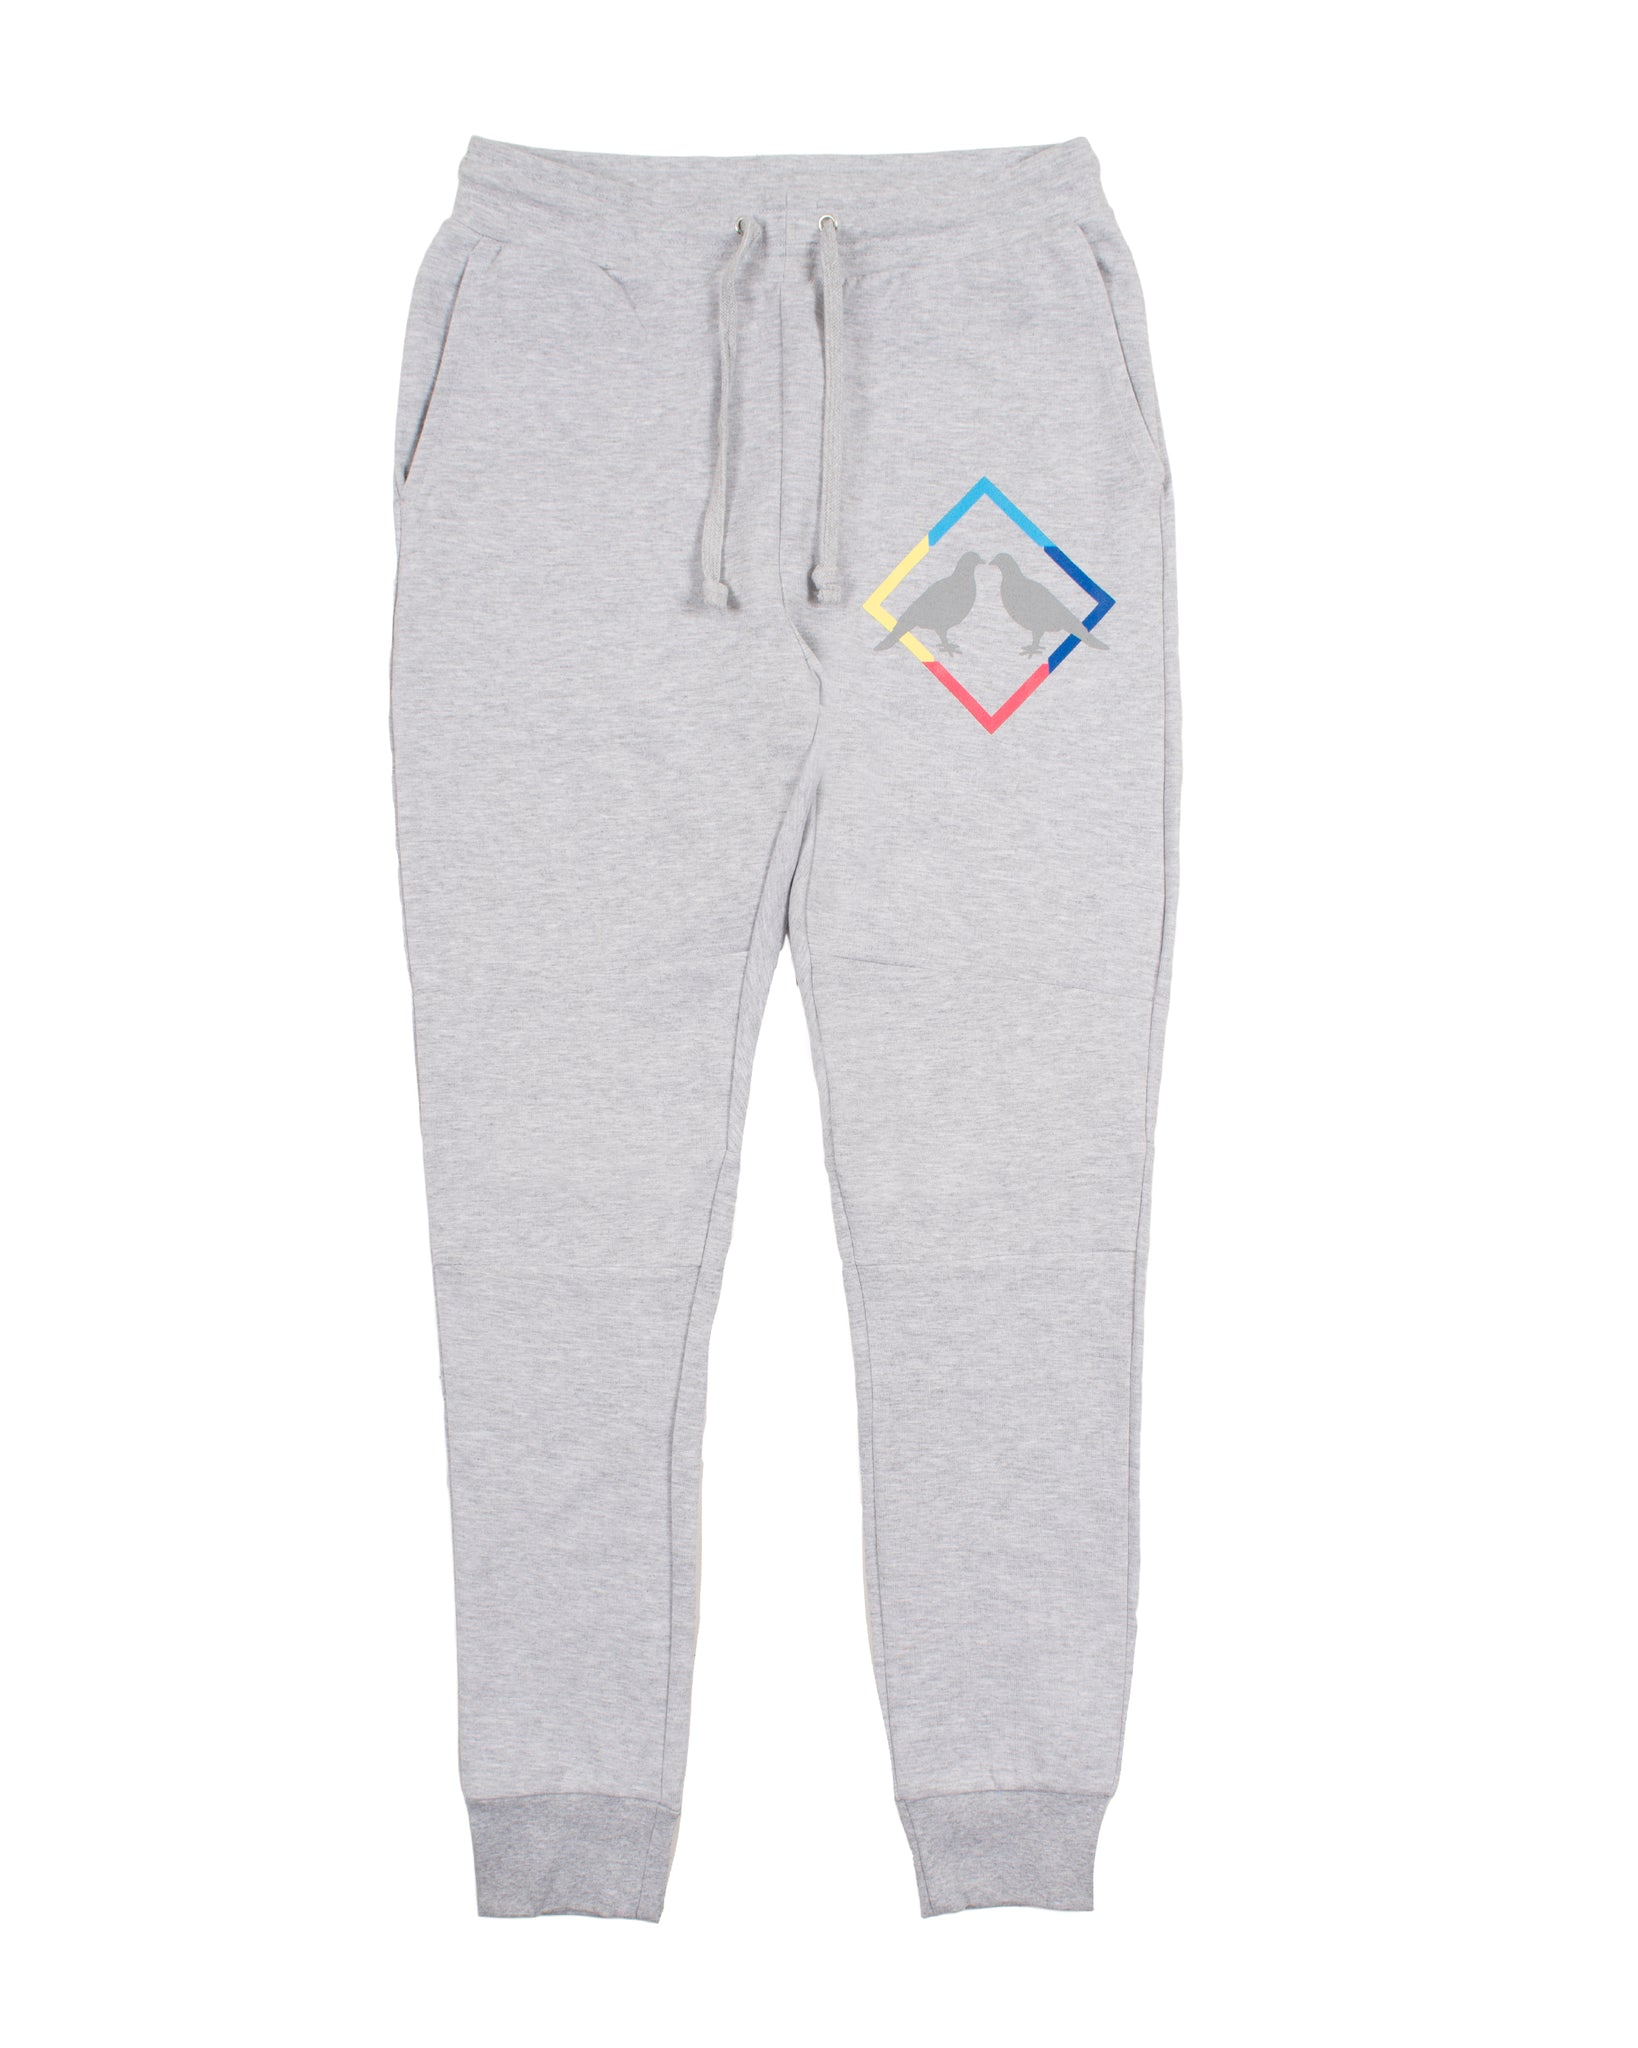 2.0 Performance Tech Fleece Sweatpants (Gray)